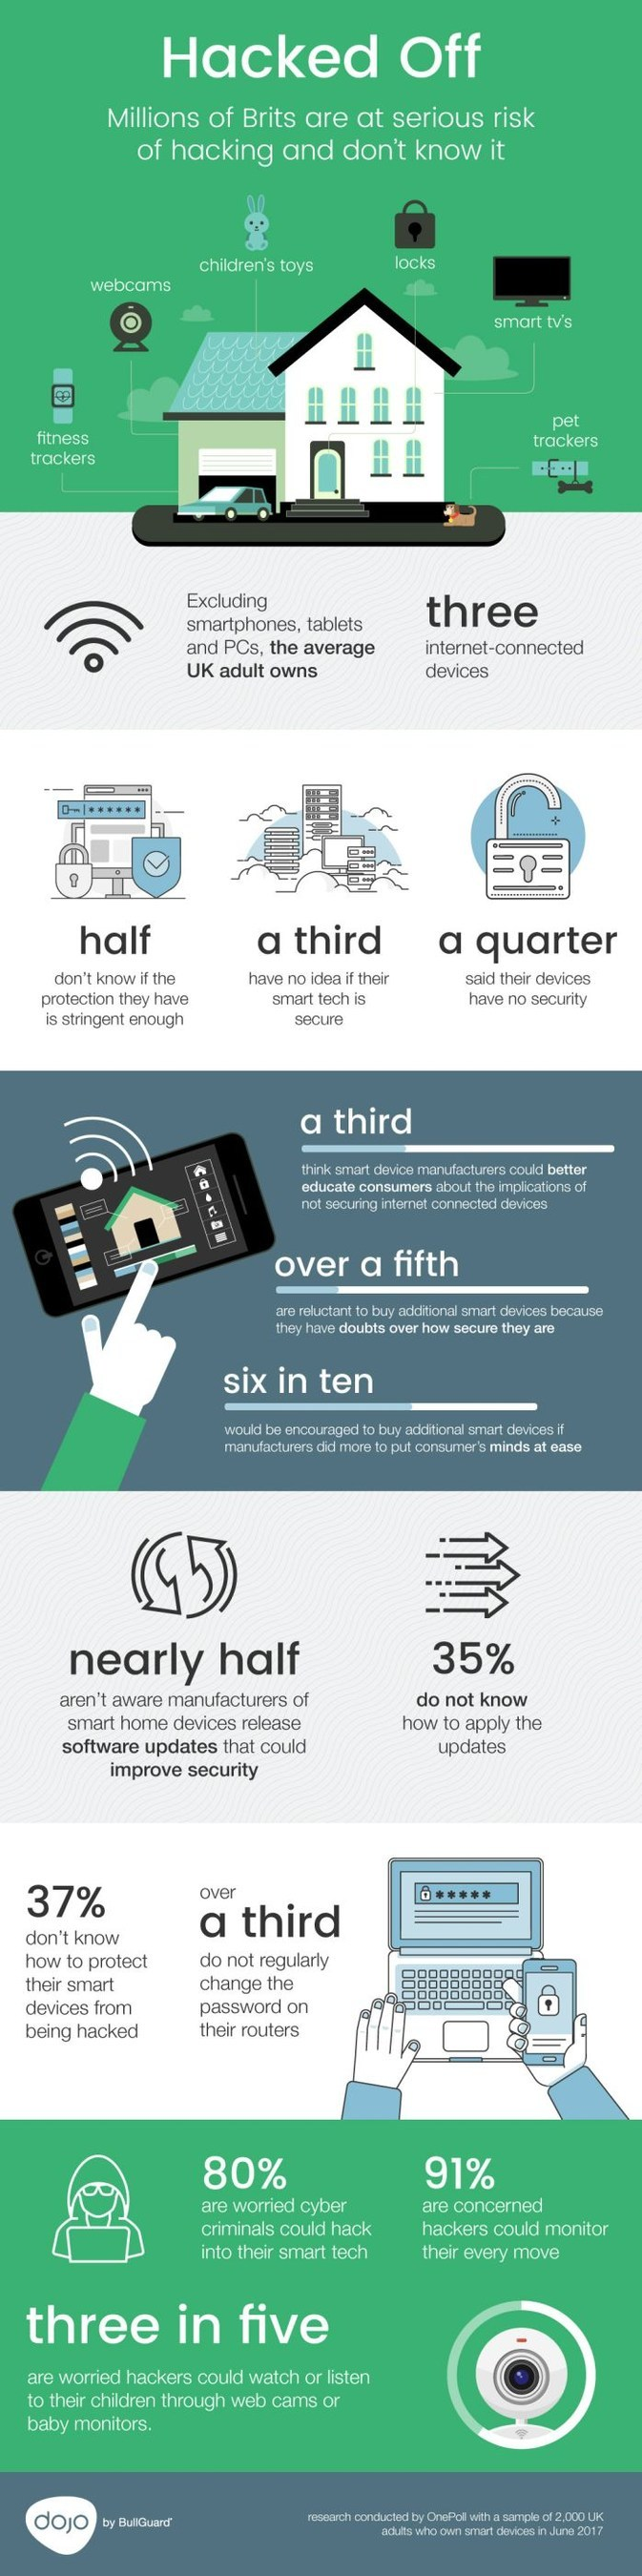 Hacked Off Infographic (PRNewsfoto/BullGuard)